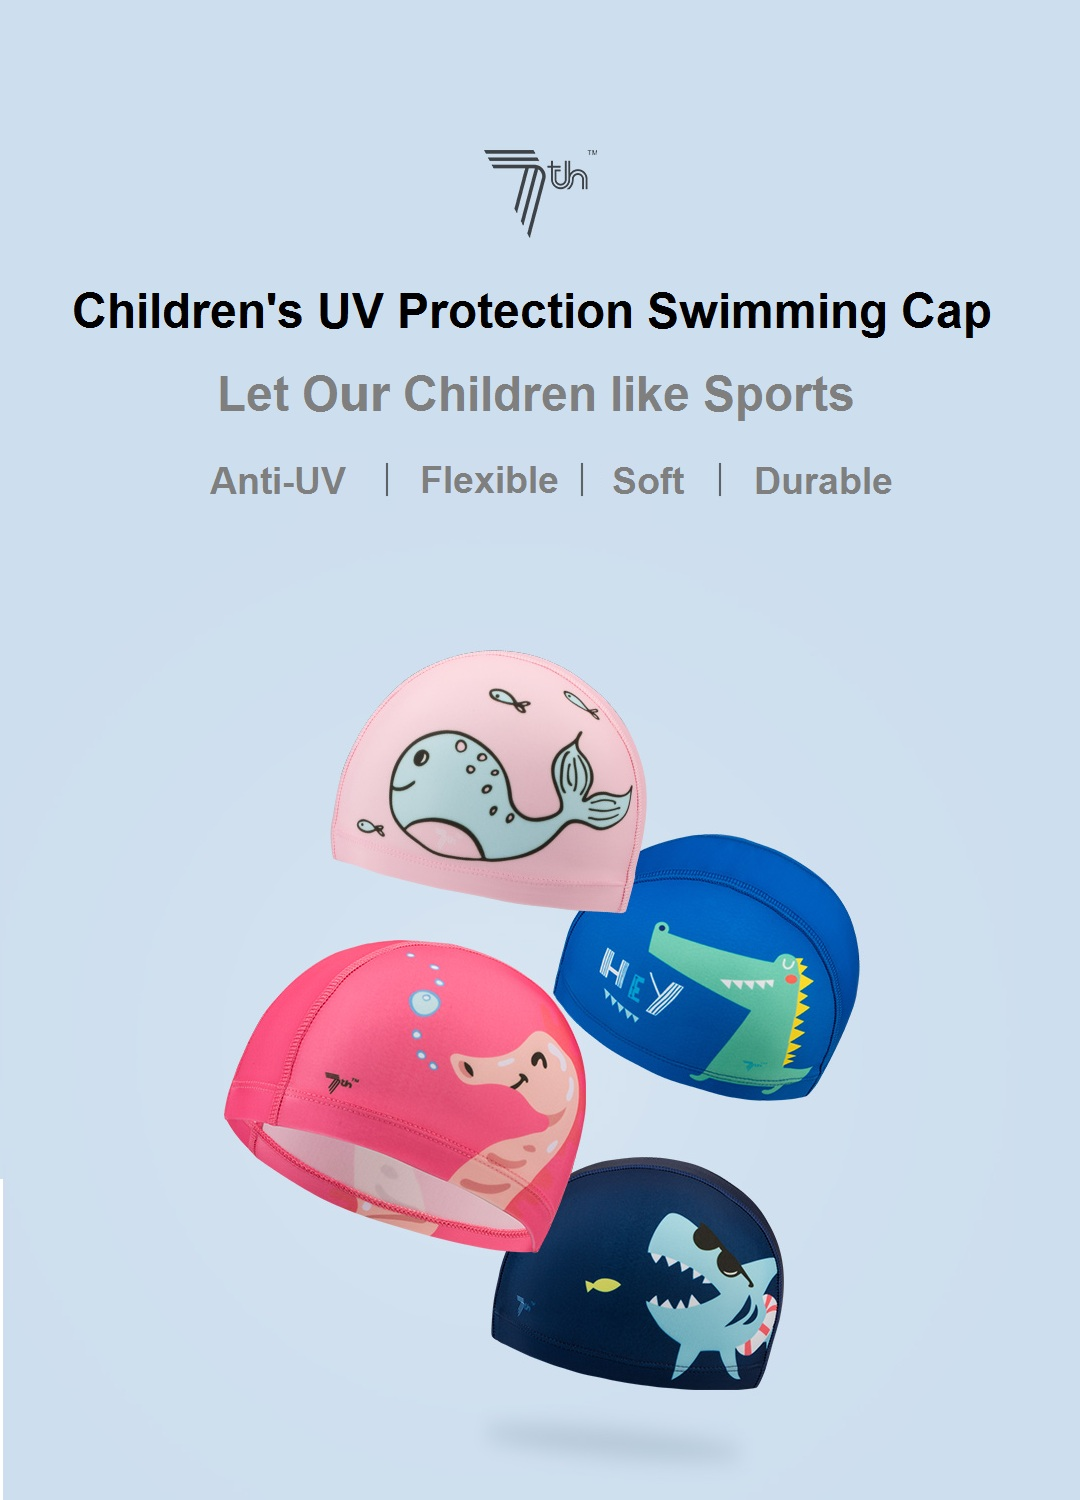 7th Children's Swimming Cap Anti-UV Flexible Soft Durble Quick Drying Swim Protective Gear From Xiaomi Youpin